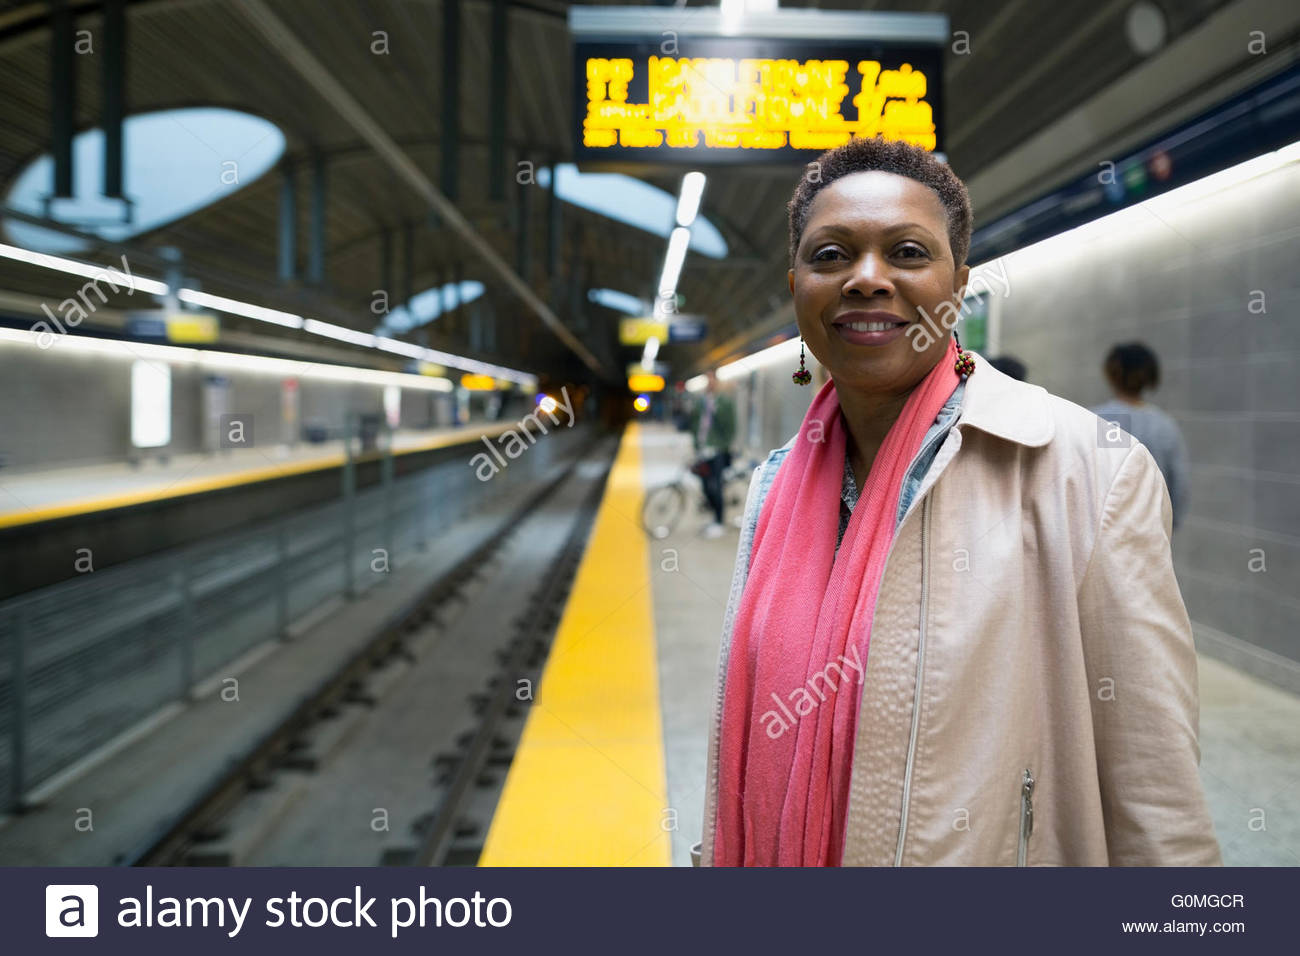 Portrait smiling woman waiting on subway station platform - Stock Image